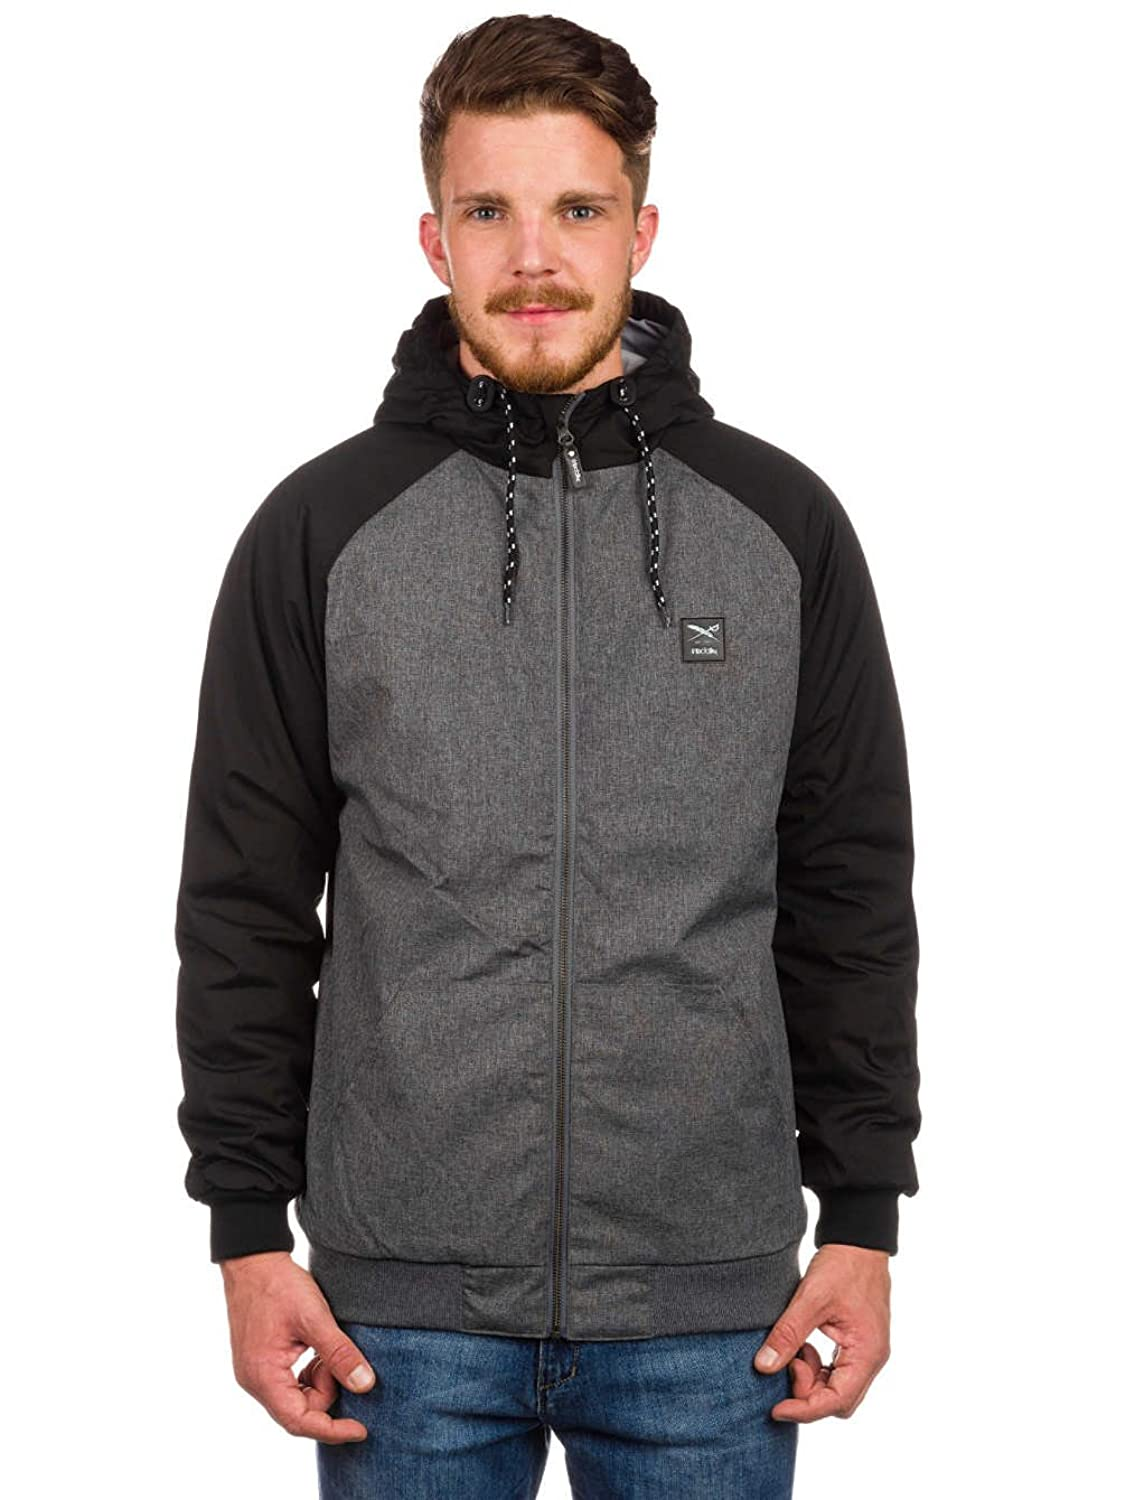 Herren Jacke Iriedaily Another Flag Jacket online bestellen